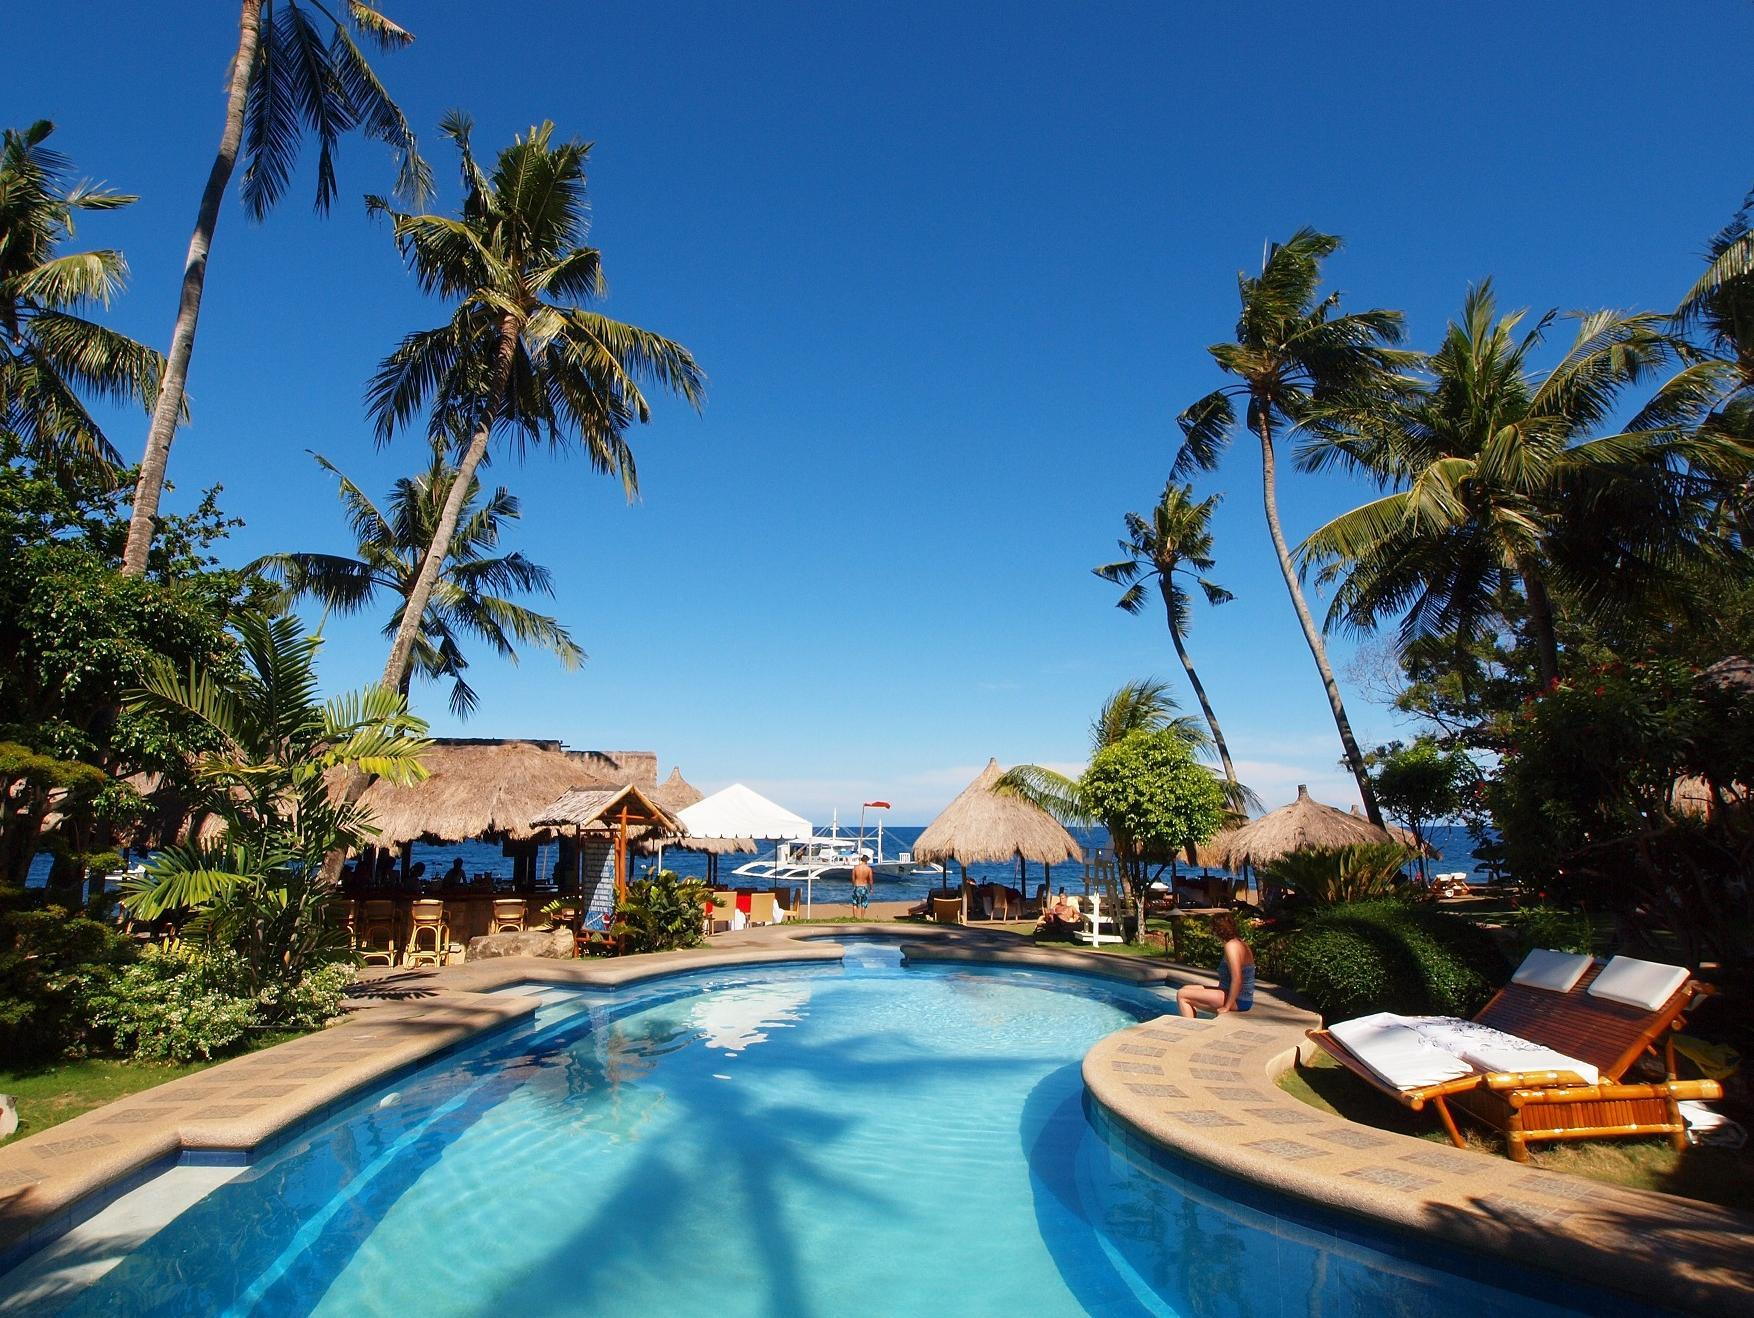 Pura Vida Beach & Dive Resort Dauin